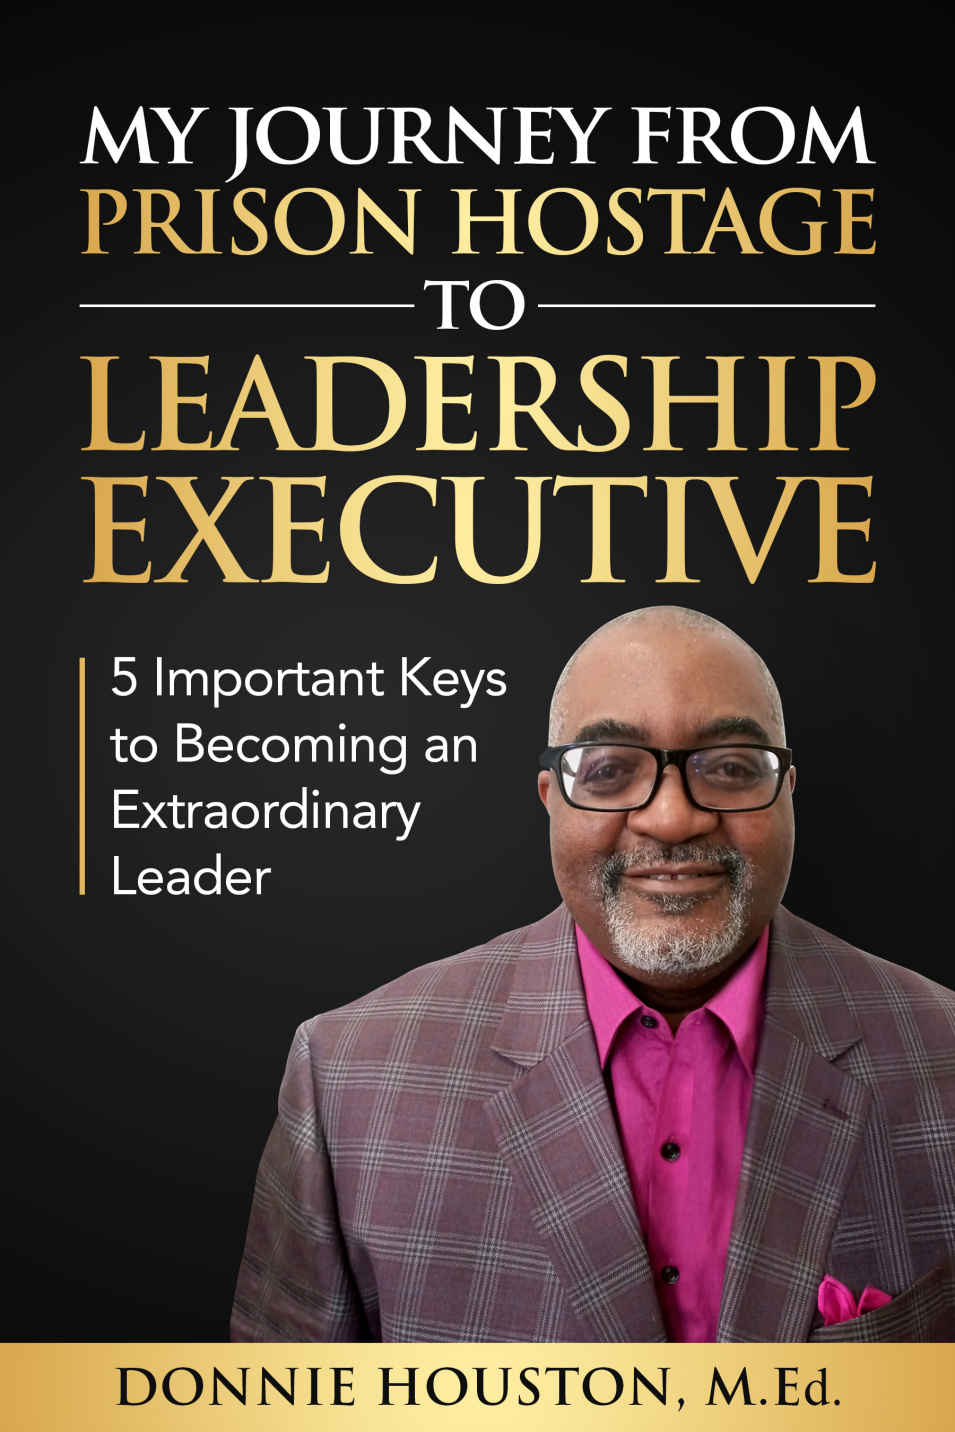 My Journey from Prison Hostage to Leadership Executive